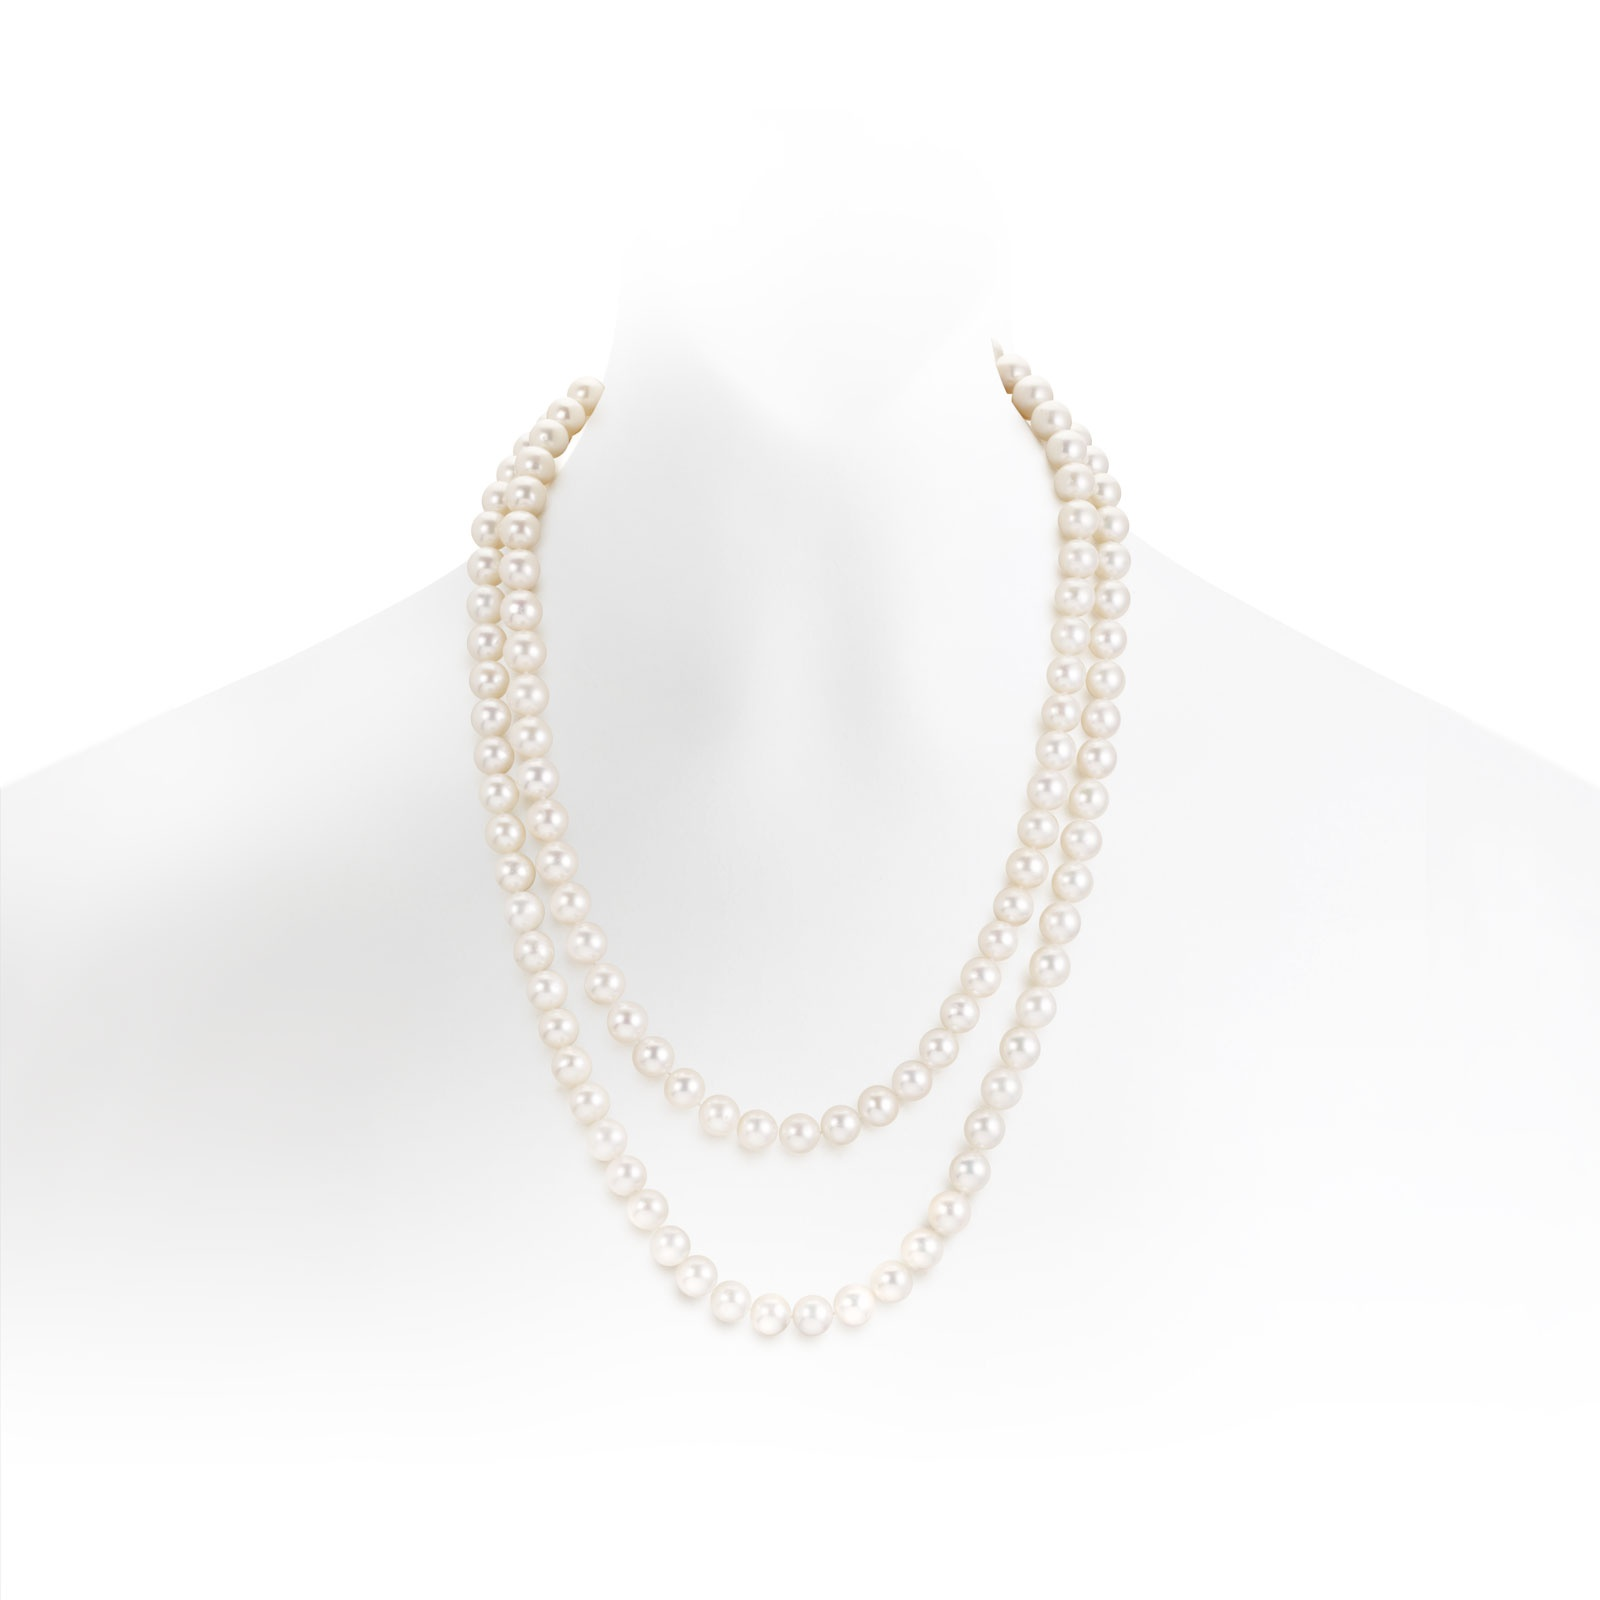 White Freshwater Pearl Sautoir Necklace with Silver Clasp-FSWRSS0093-1